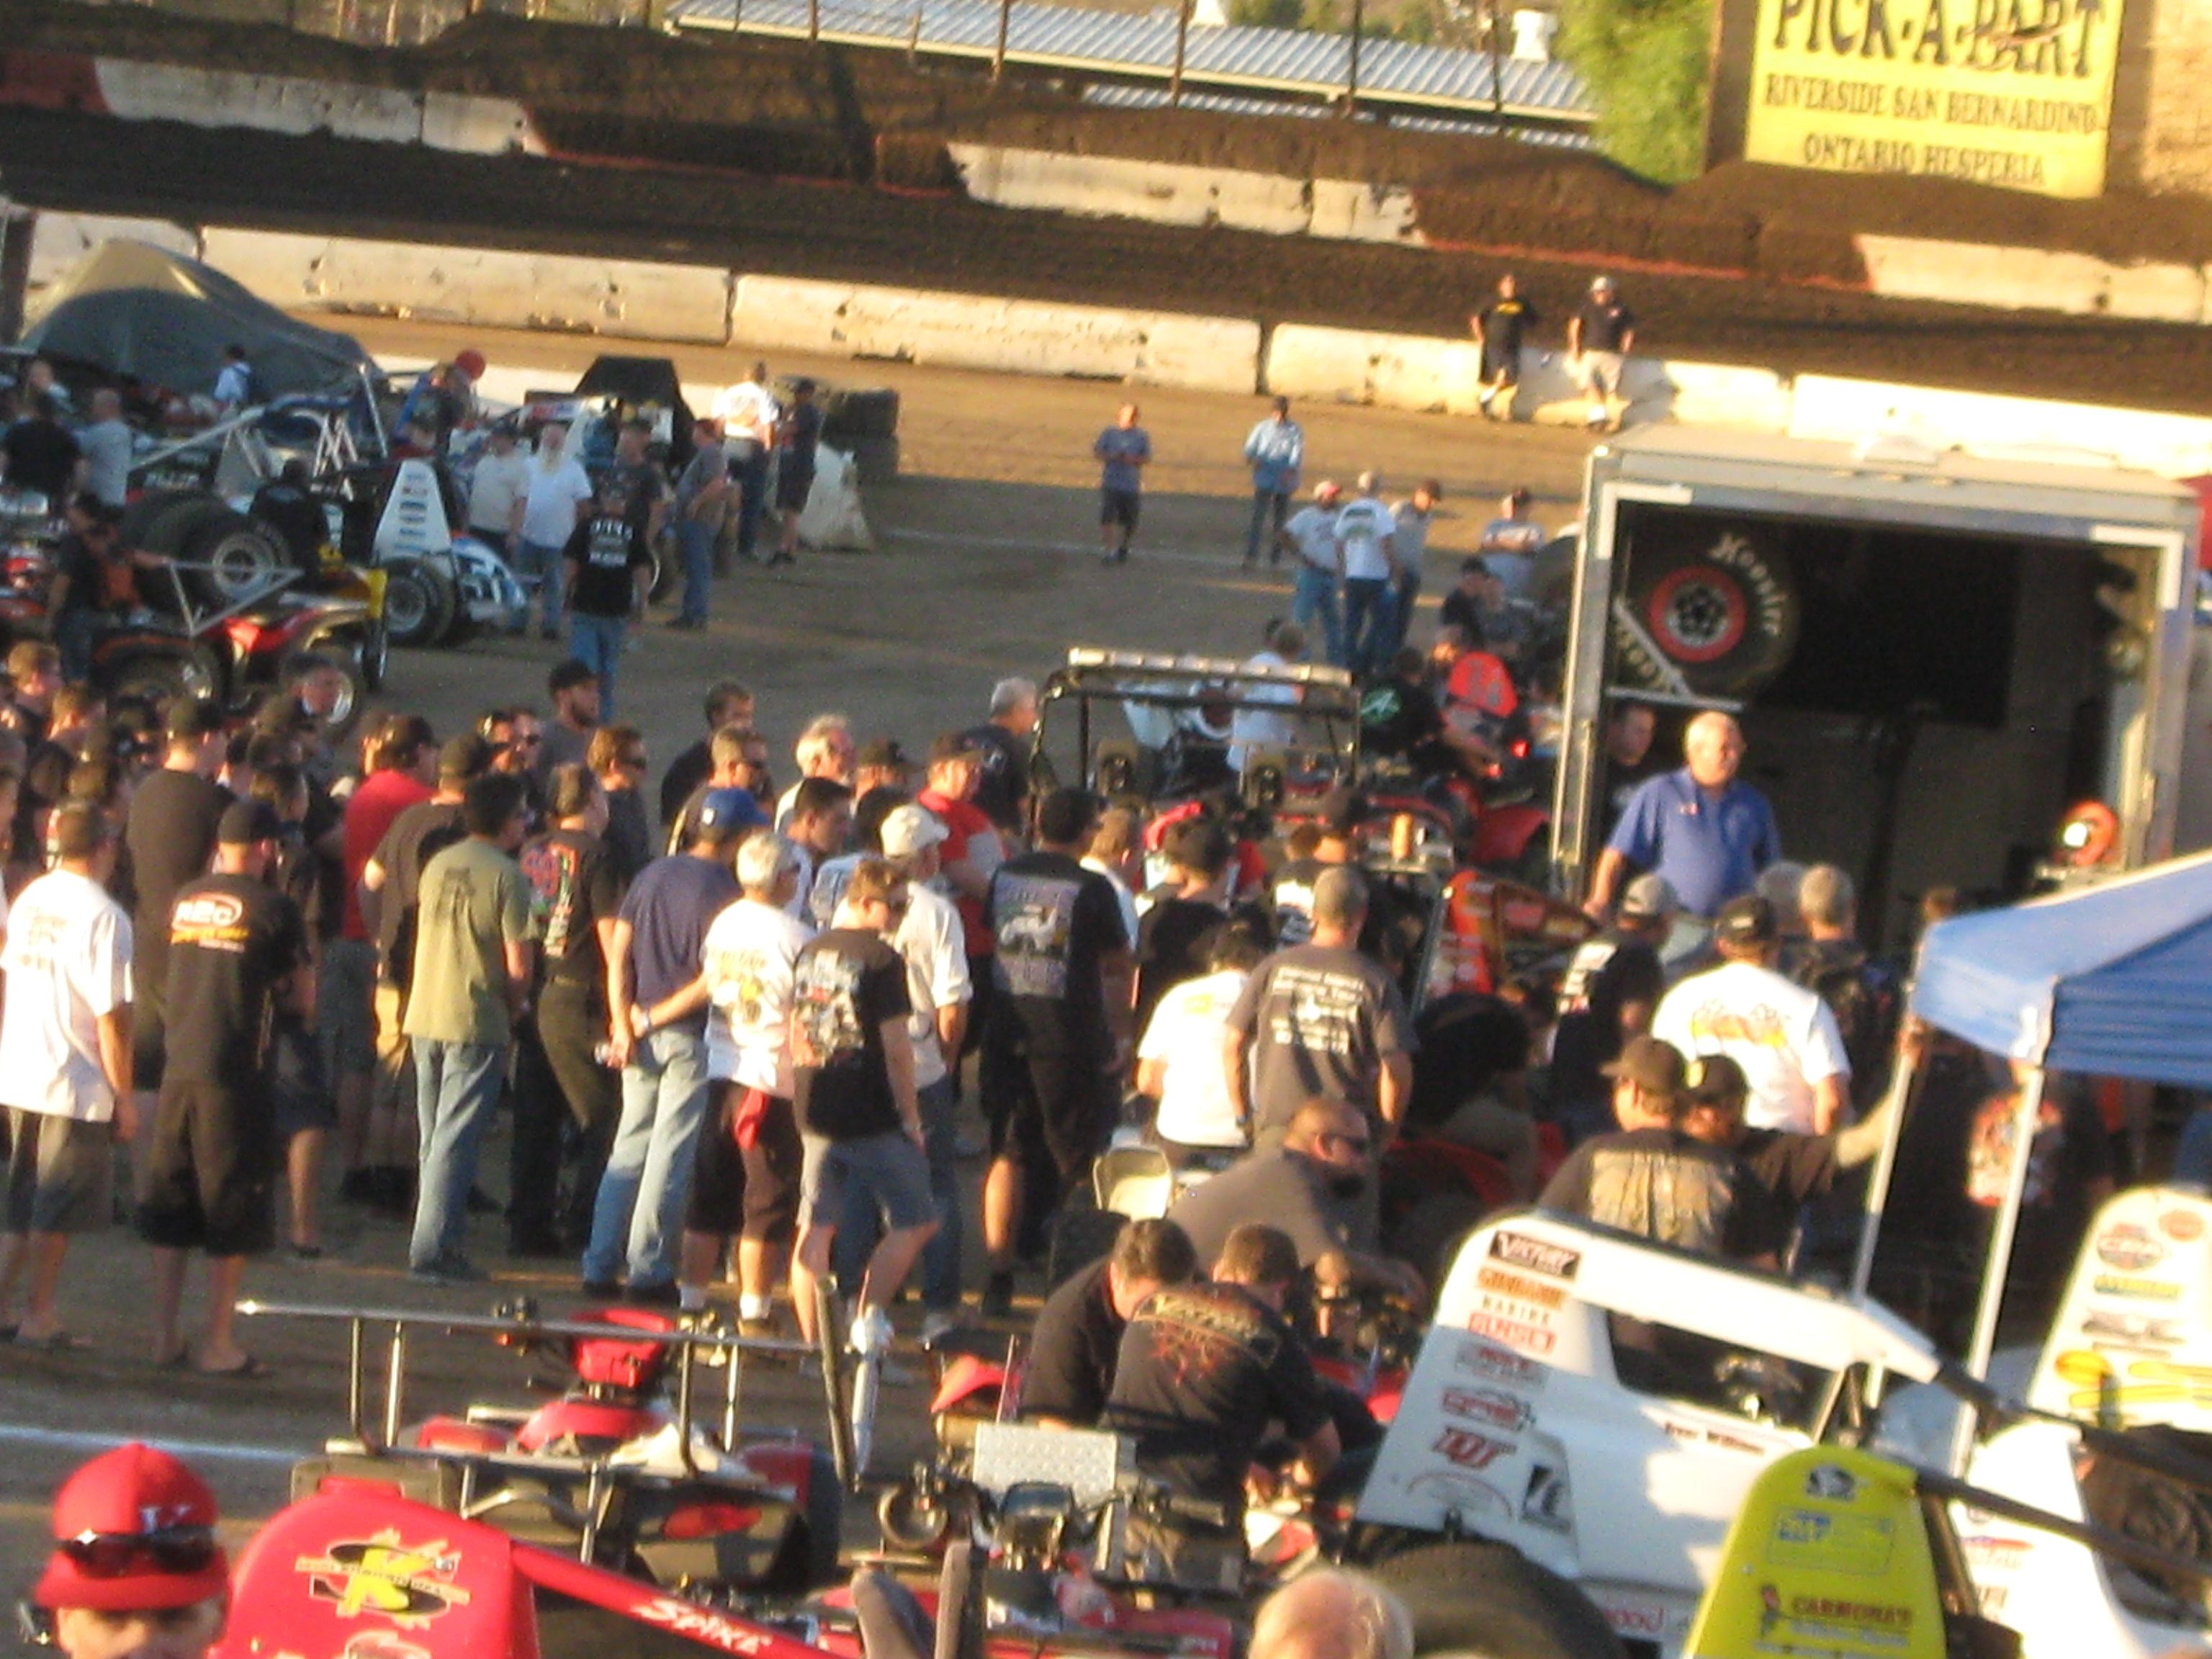 Pit Walk    Nov. 7, 2014  19th Annual Budweiser Oval Nationals @ Perris Auto Speedway November 5-8, 2014  Sponsored by All Coast Construction  http://perrisautospeedway.com #ovalnationals #allcoastconstruction #410sprints #360sprints #lightningsprints #seniorsprints #autospeedway #speedway #attractions #thingstodoinsoutherncalifornia #autoracing #stockcars #stockcarracing #sprintcars #trophygirls  #sprintcarracing